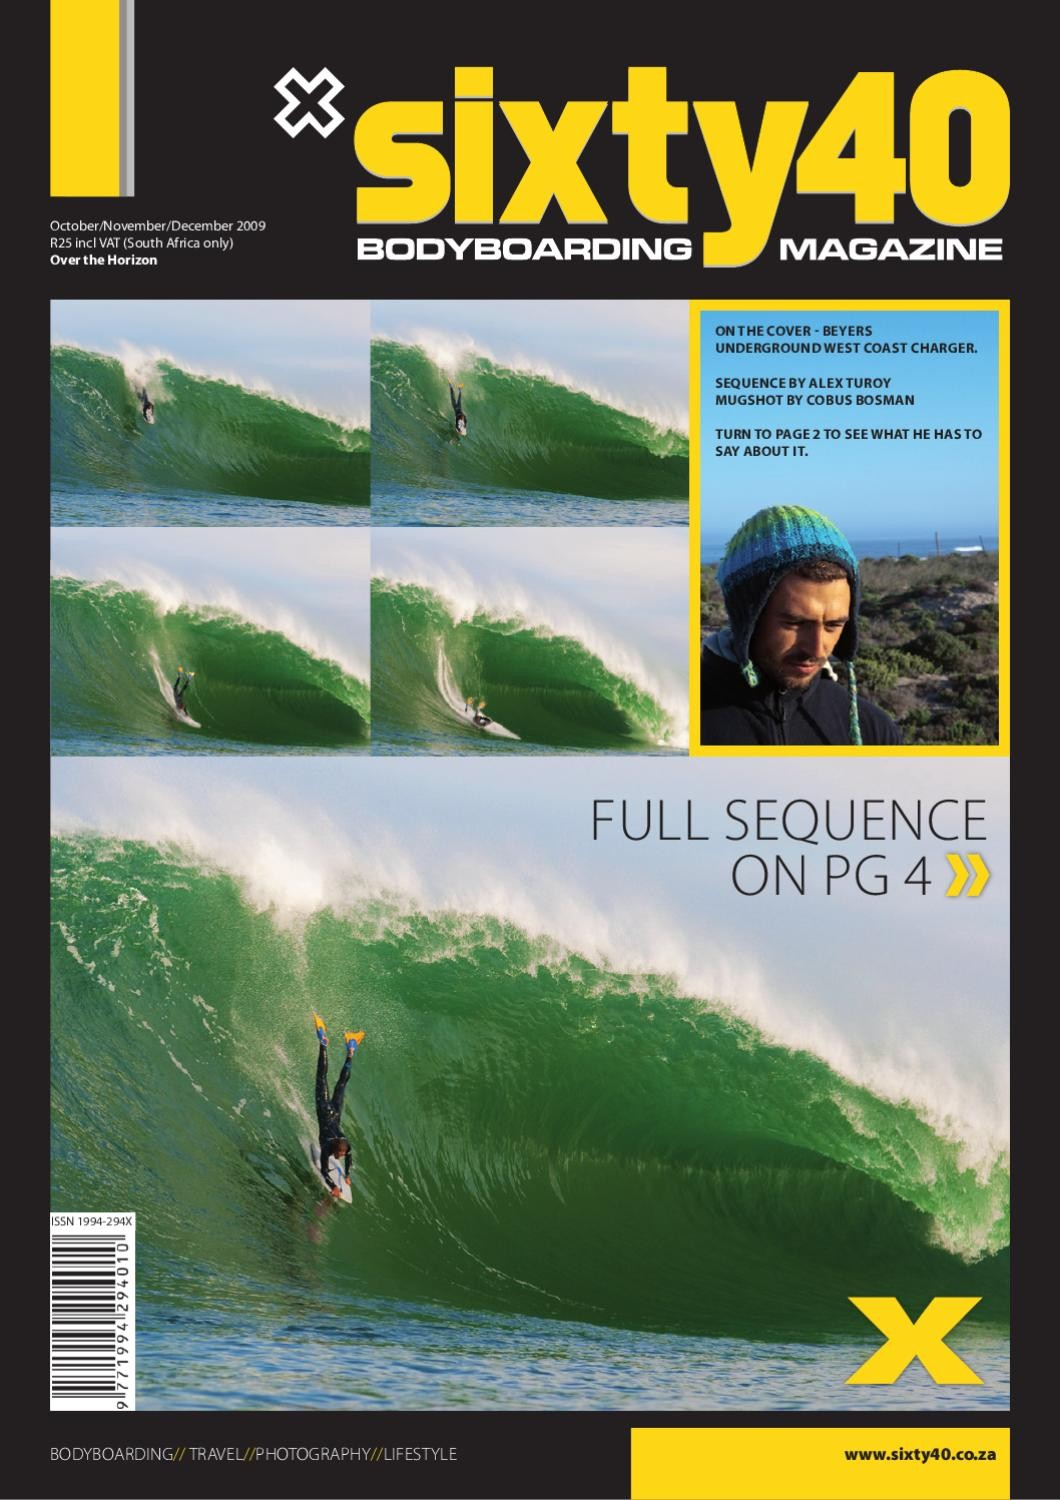 Sixty40 Bodyboarding Magazine - issue #10 - page 1